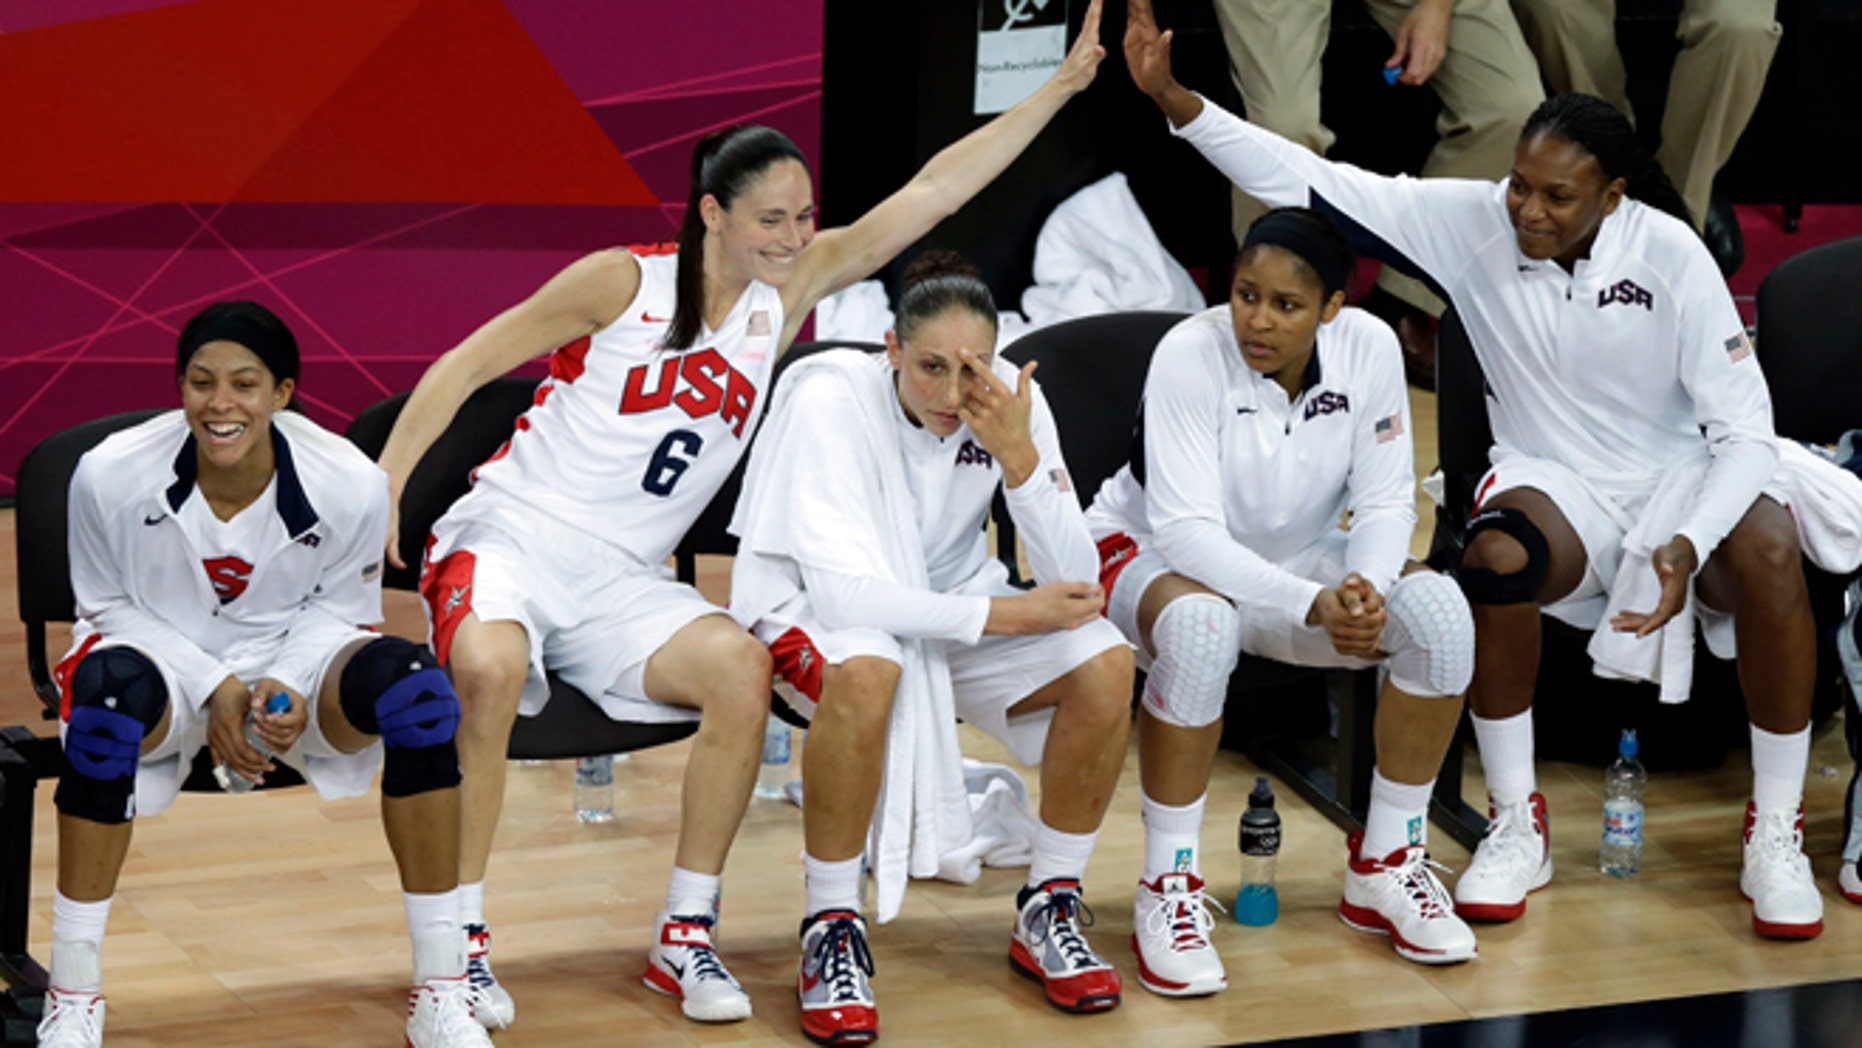 Aug. 11: United States' players react on the bench during a women's gold medal basketball game against France at the 2012 Summer Olympics.